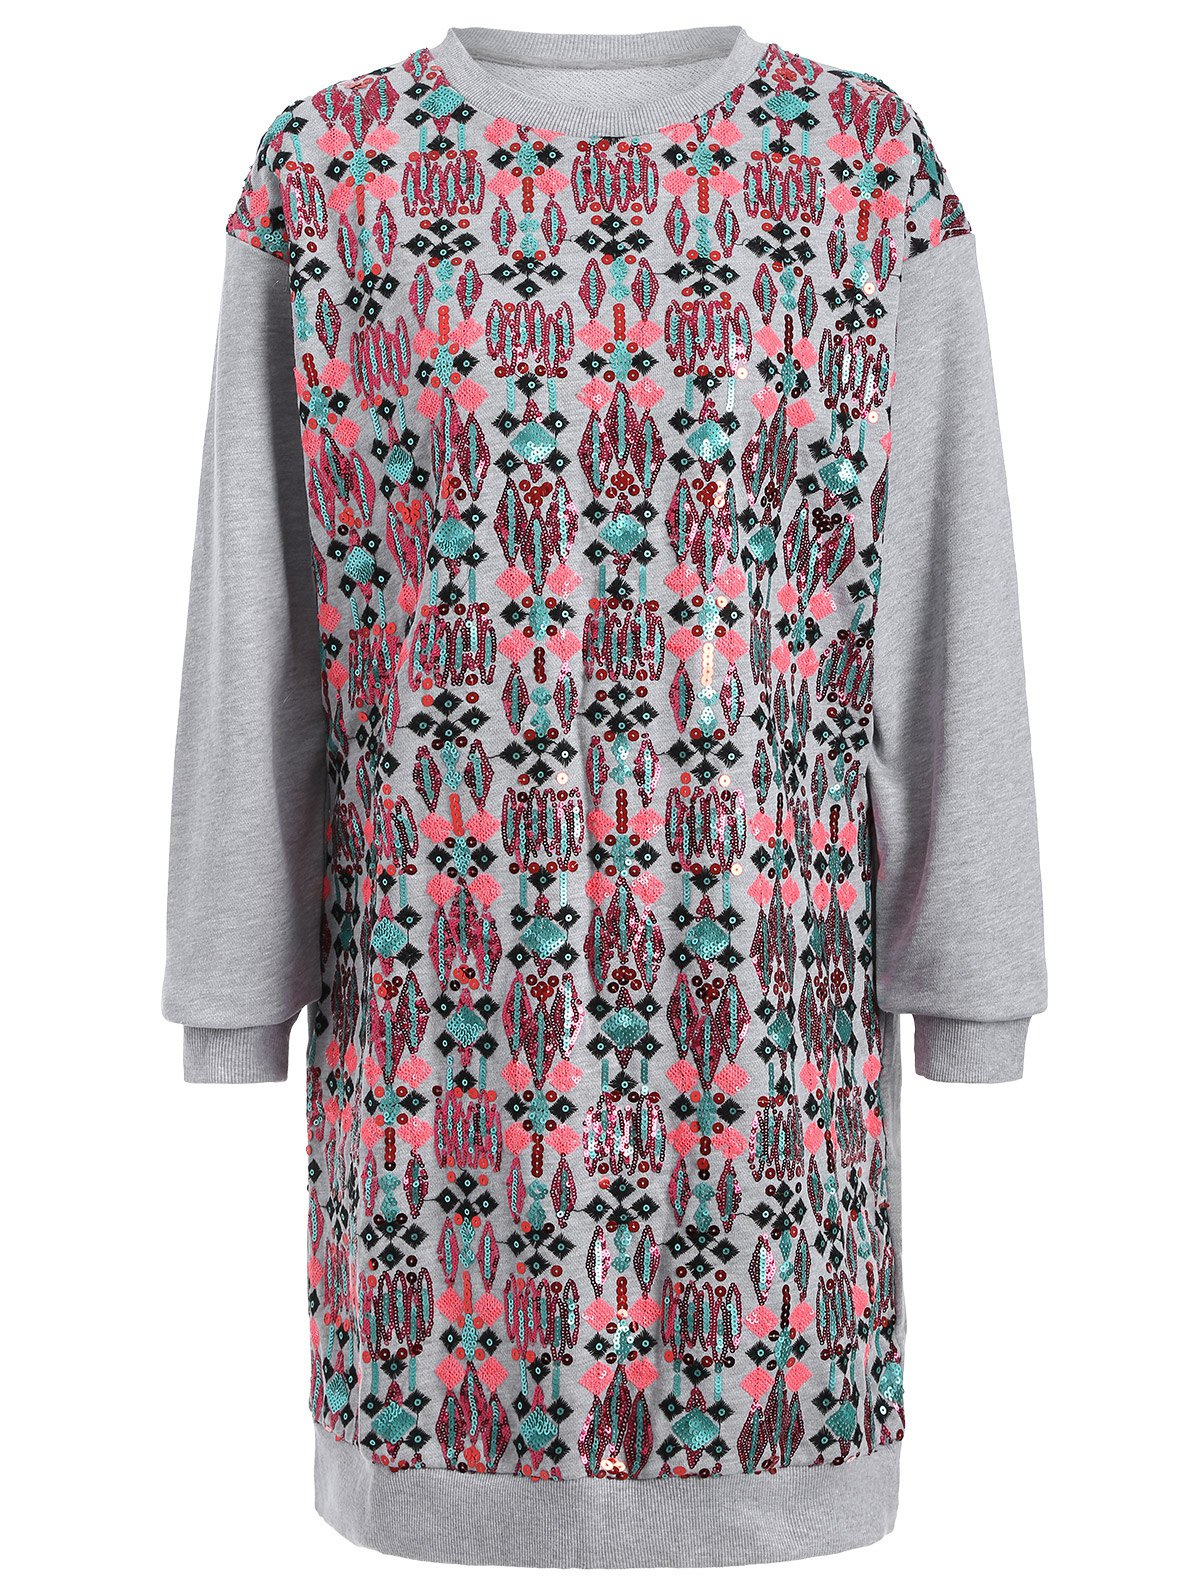 Sequined Embroidered Long Sleeve Dress - GRAY M